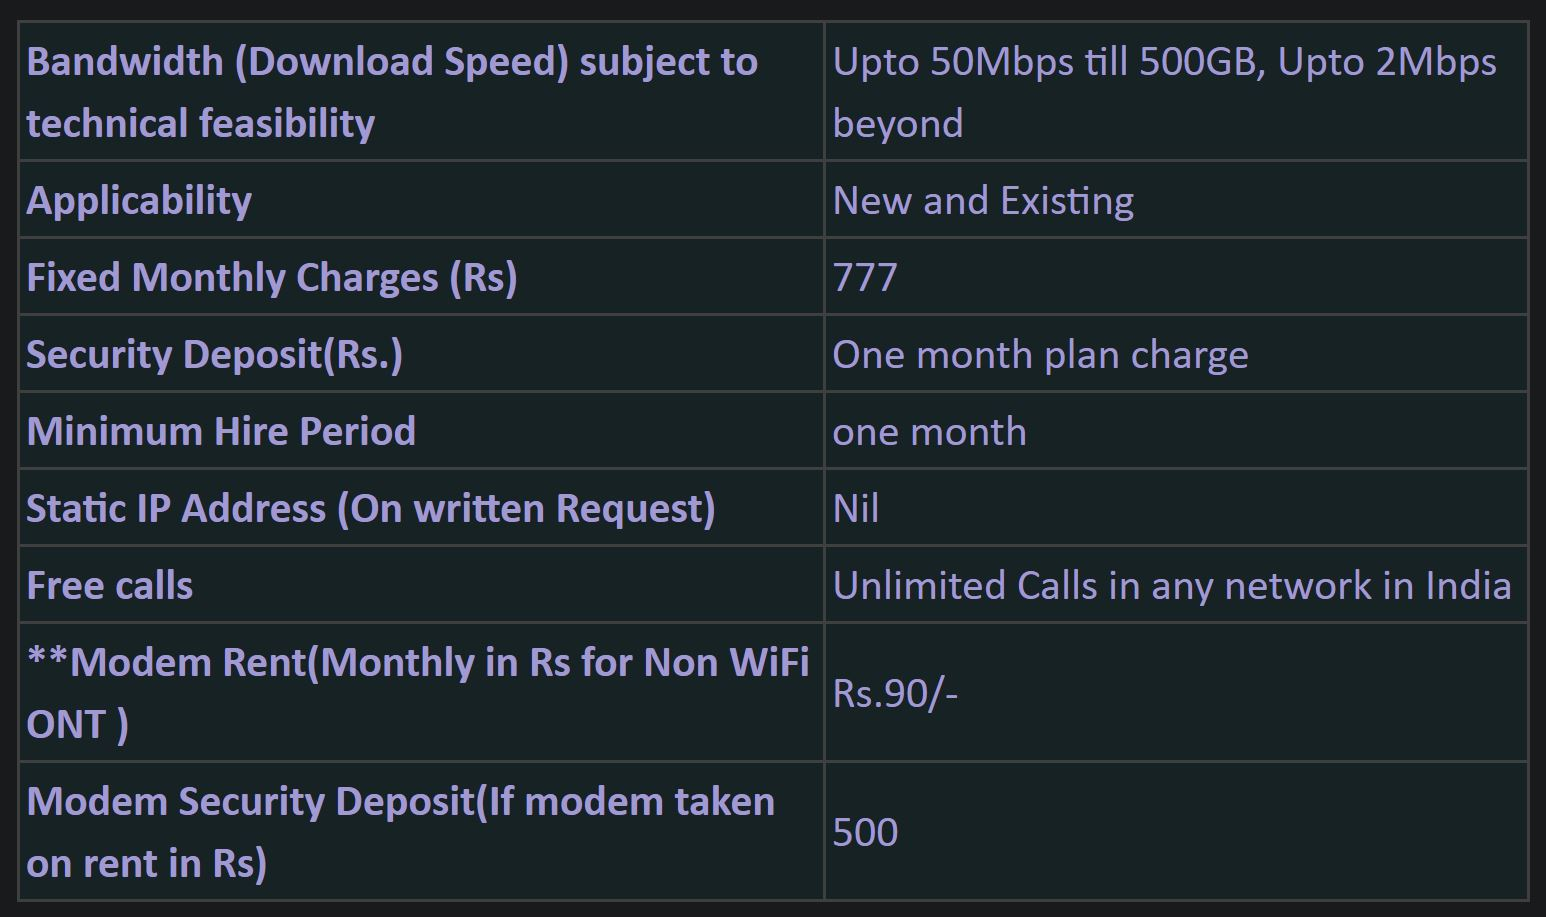 BSNL offers unlimited data for 1 year for FTTH upgrade in Kerala